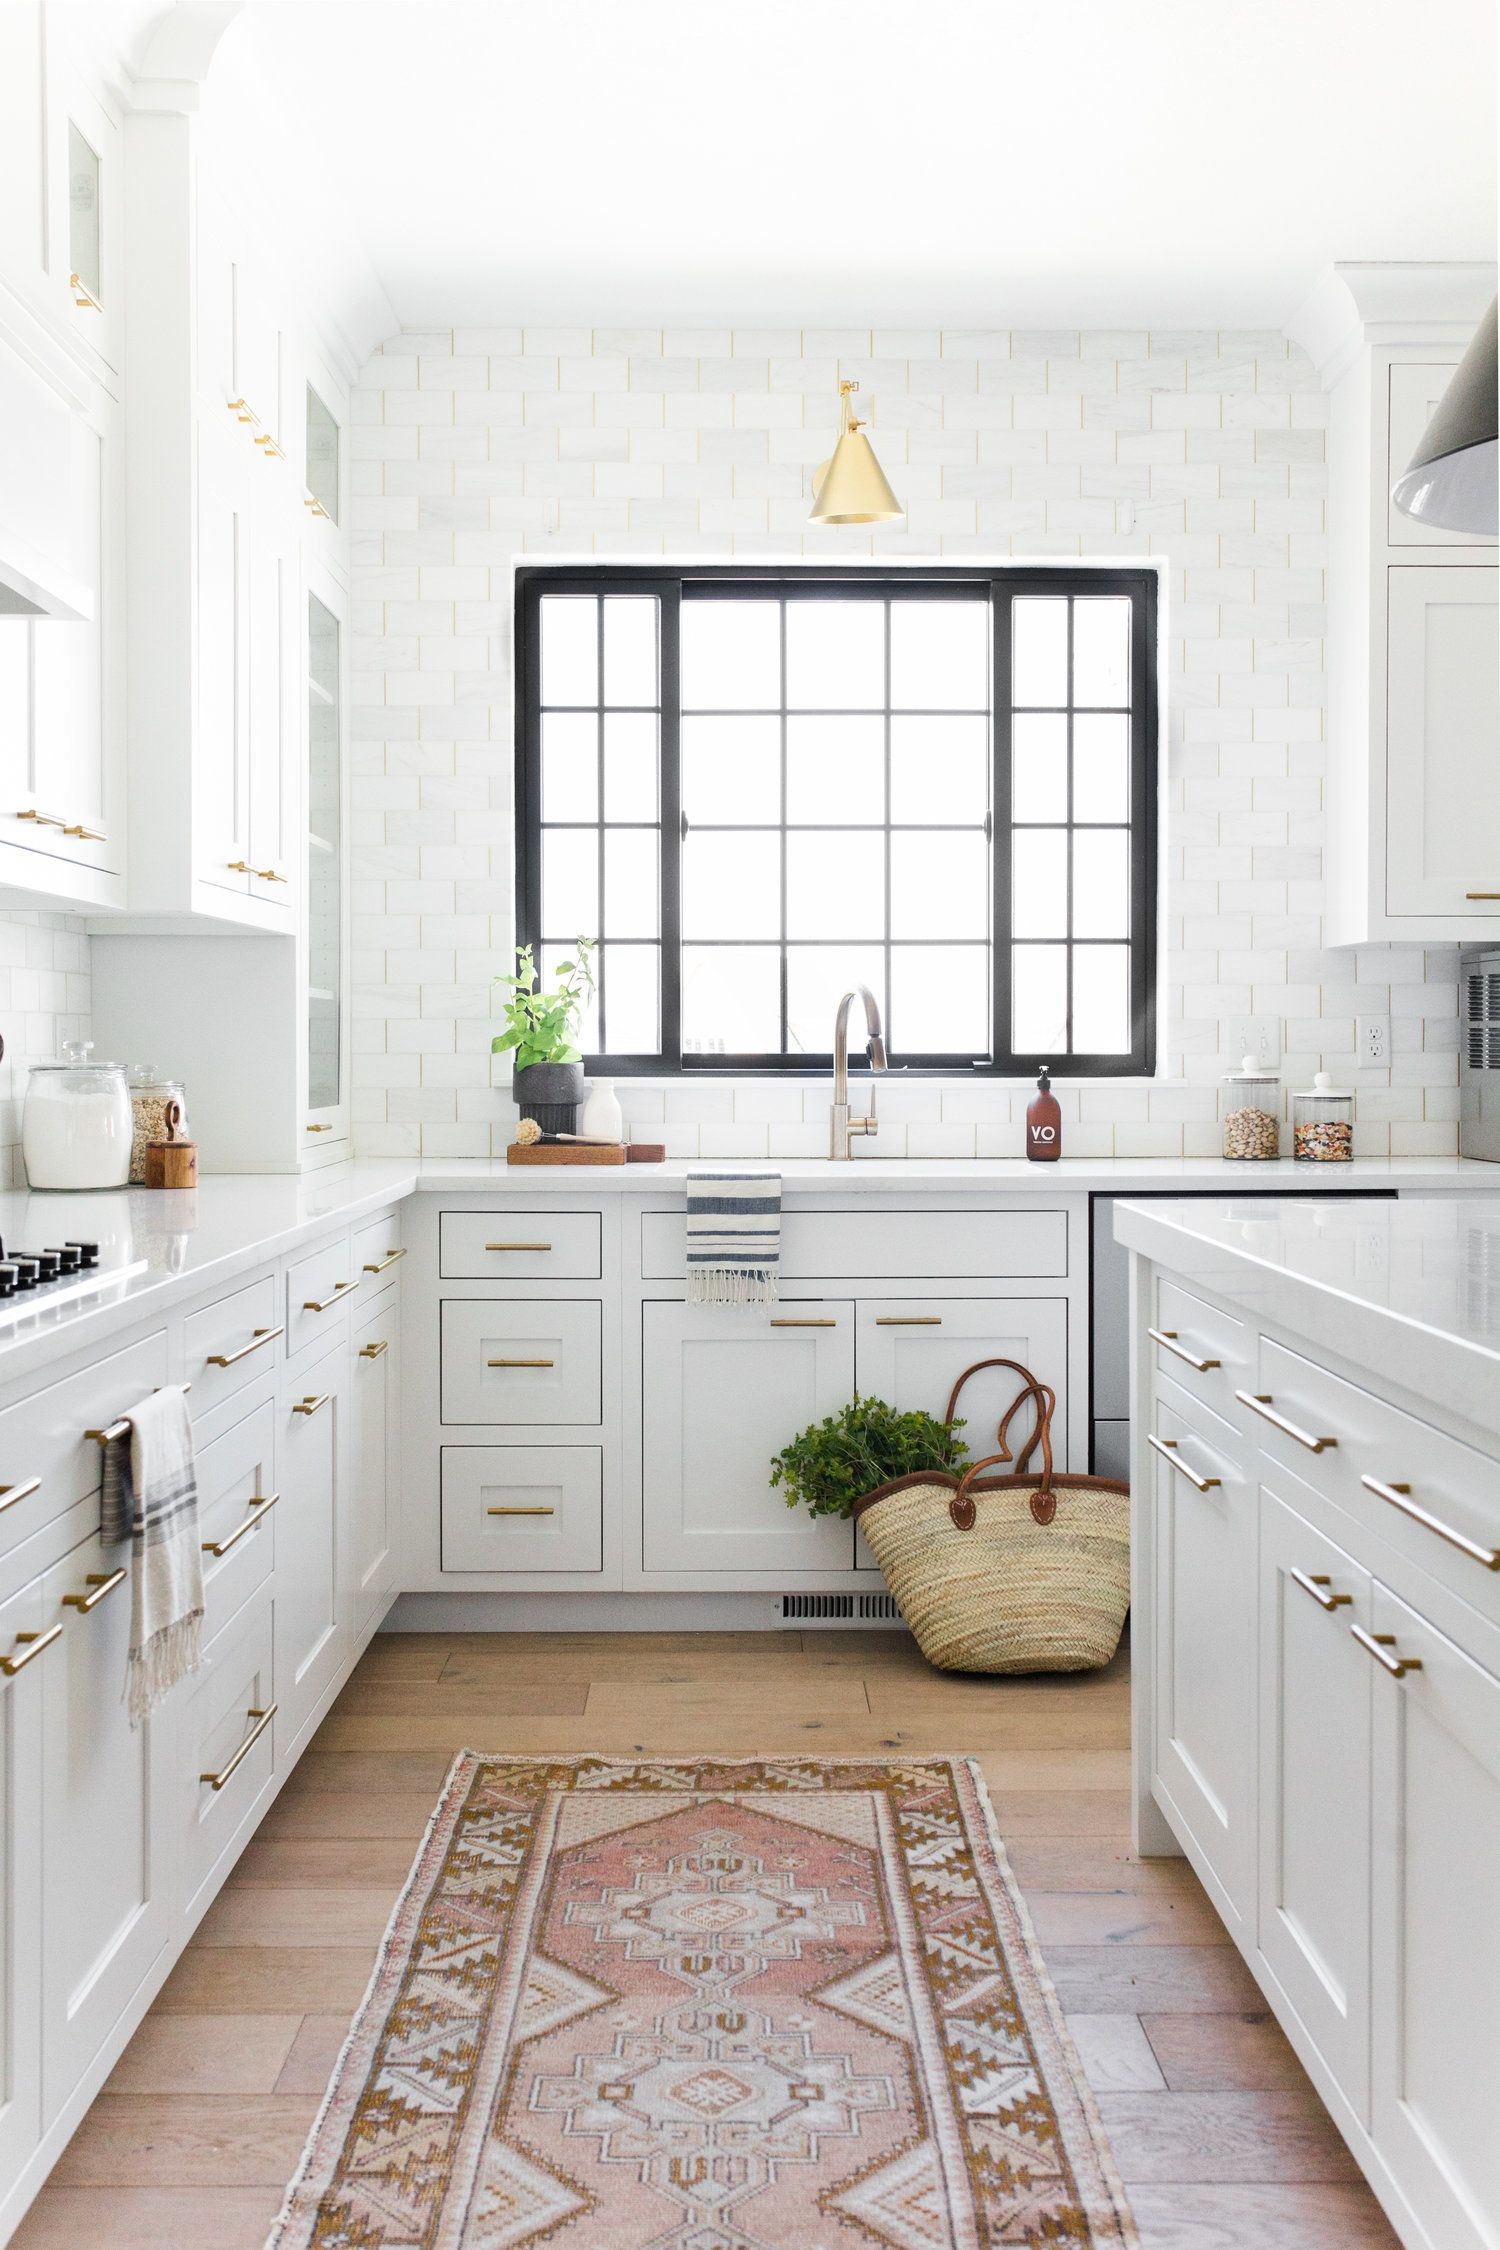 5 timeless design trends you will remember from this decade in rh pinterest com